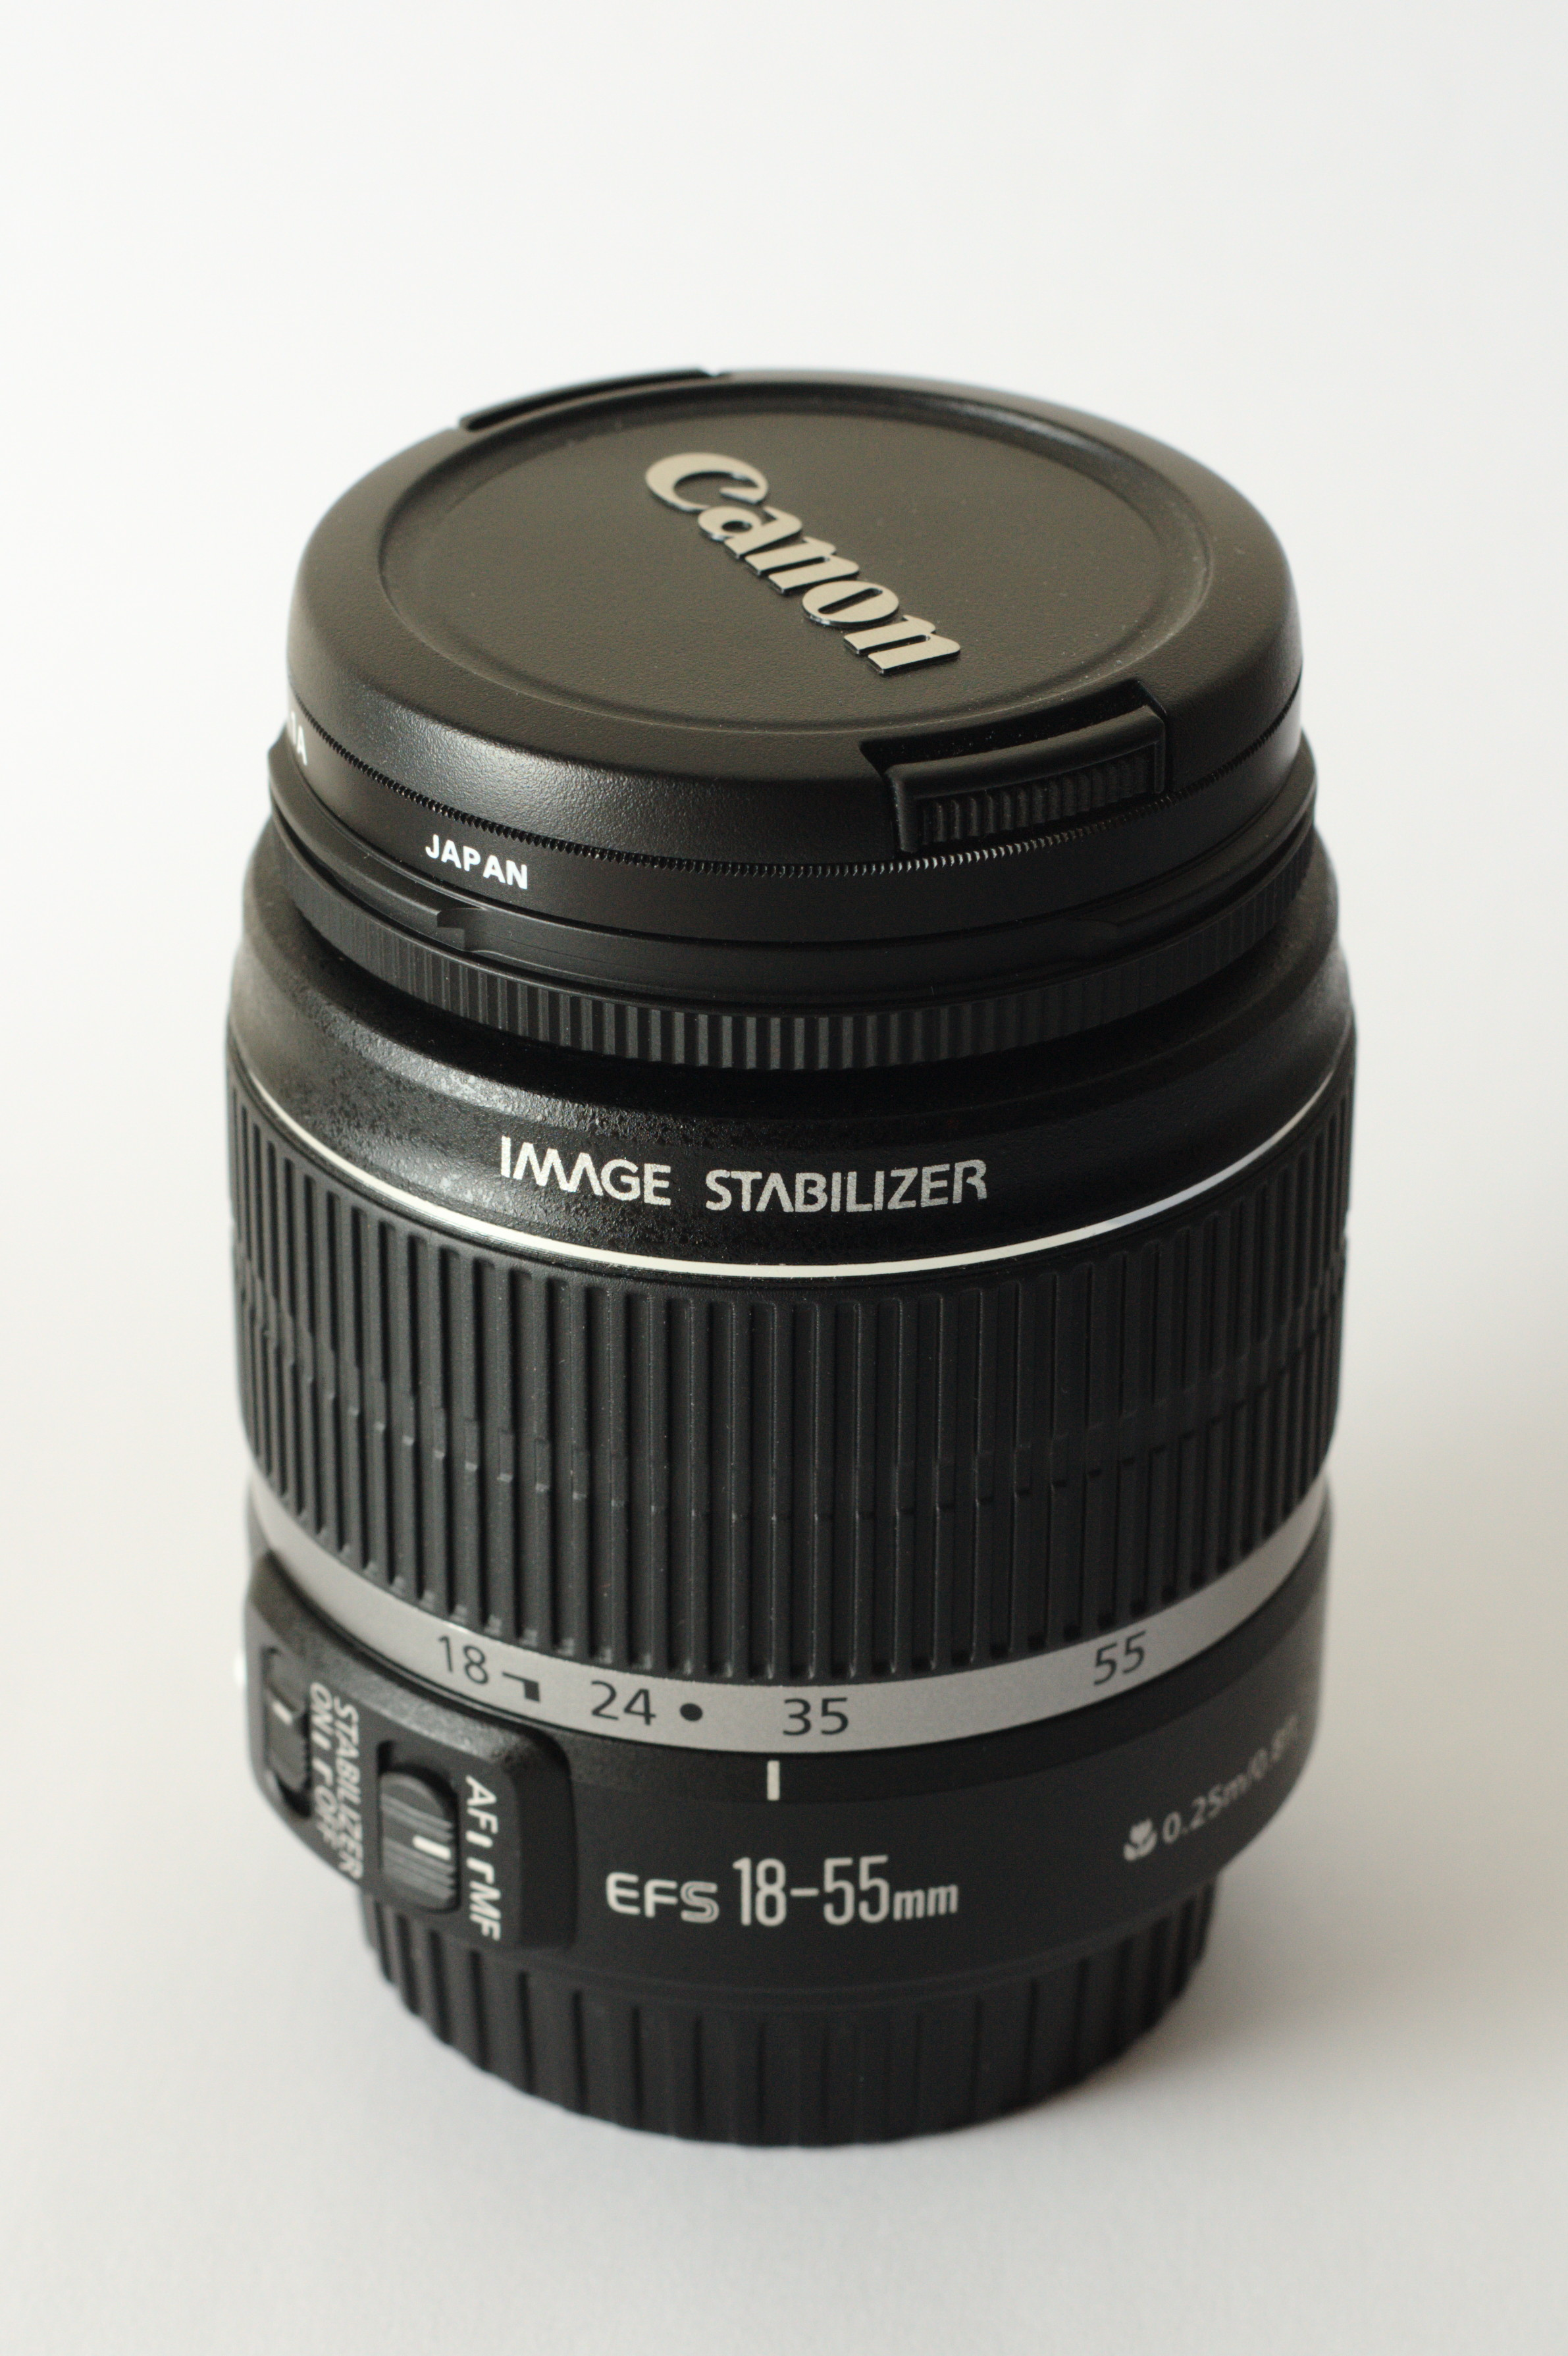 Canon 18-55 mm f/3.5-5.6 IS